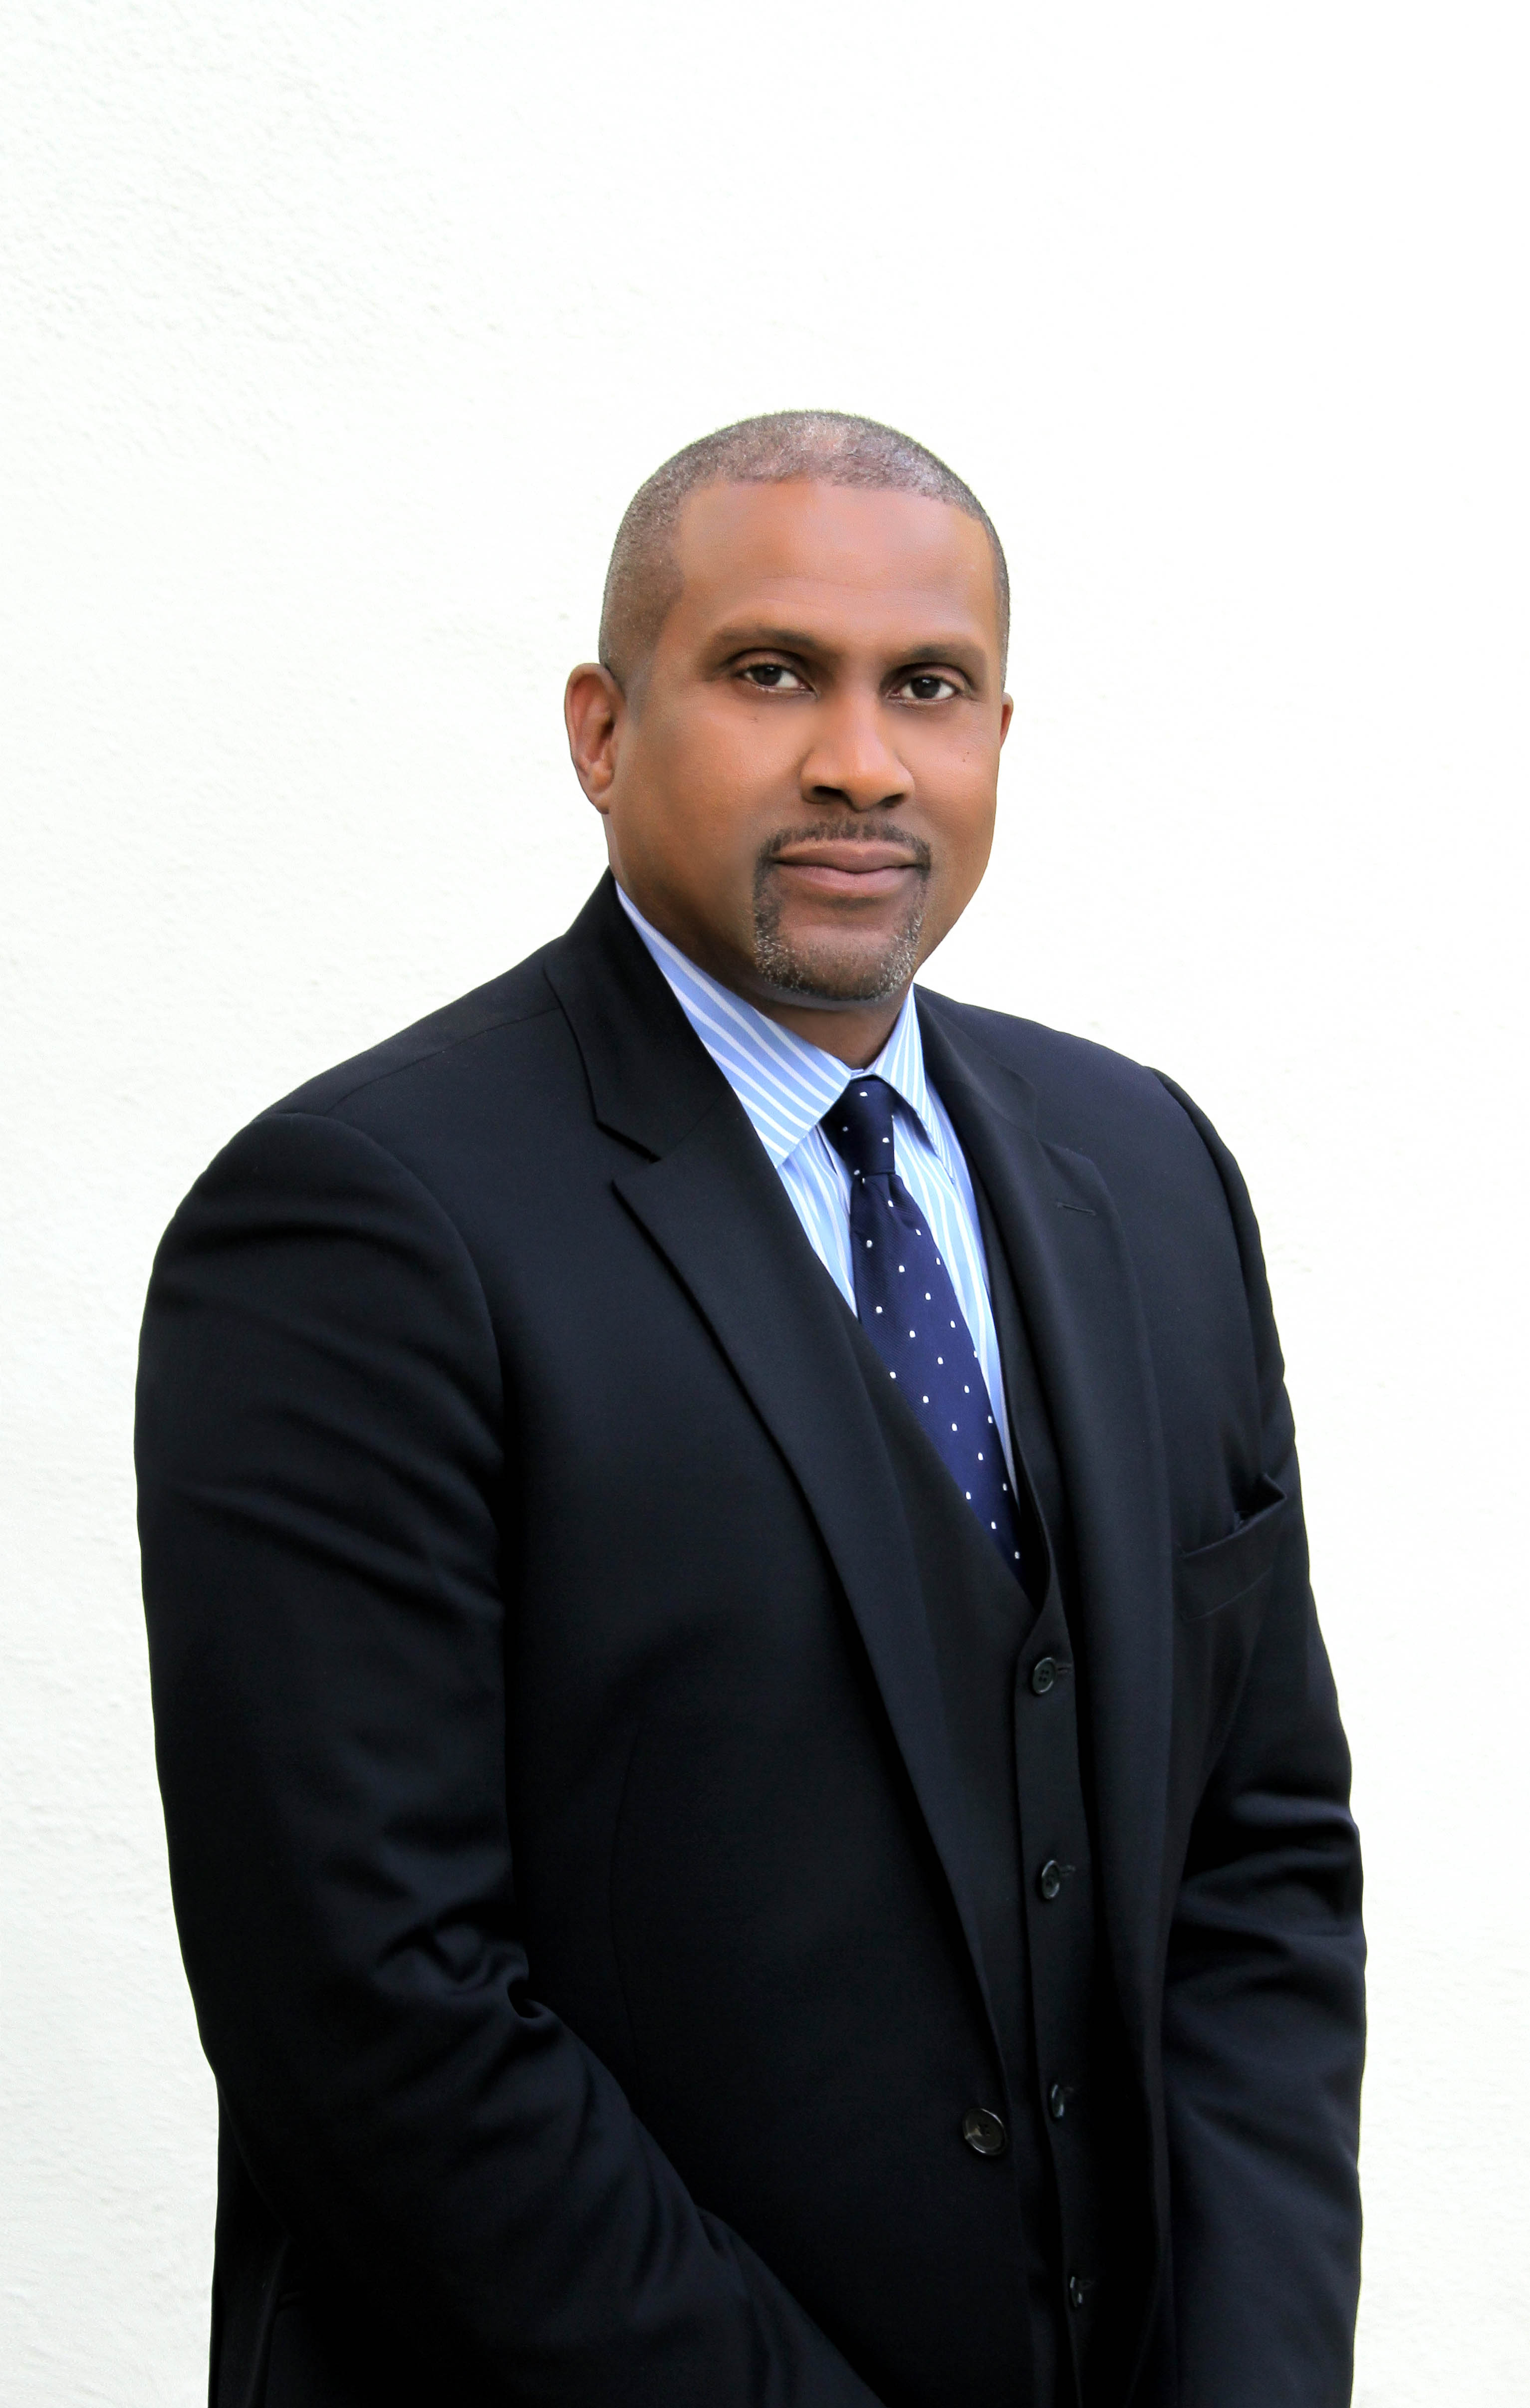 tavis smiley Less than a month after losing a pbs distribution deal due to allegations of inappropriate workplace behavior and sexual misconduct that included relationships with his subordinates, author and talk show host tavis smiley is positioning himself for a comeback smiley announced this week that he will.